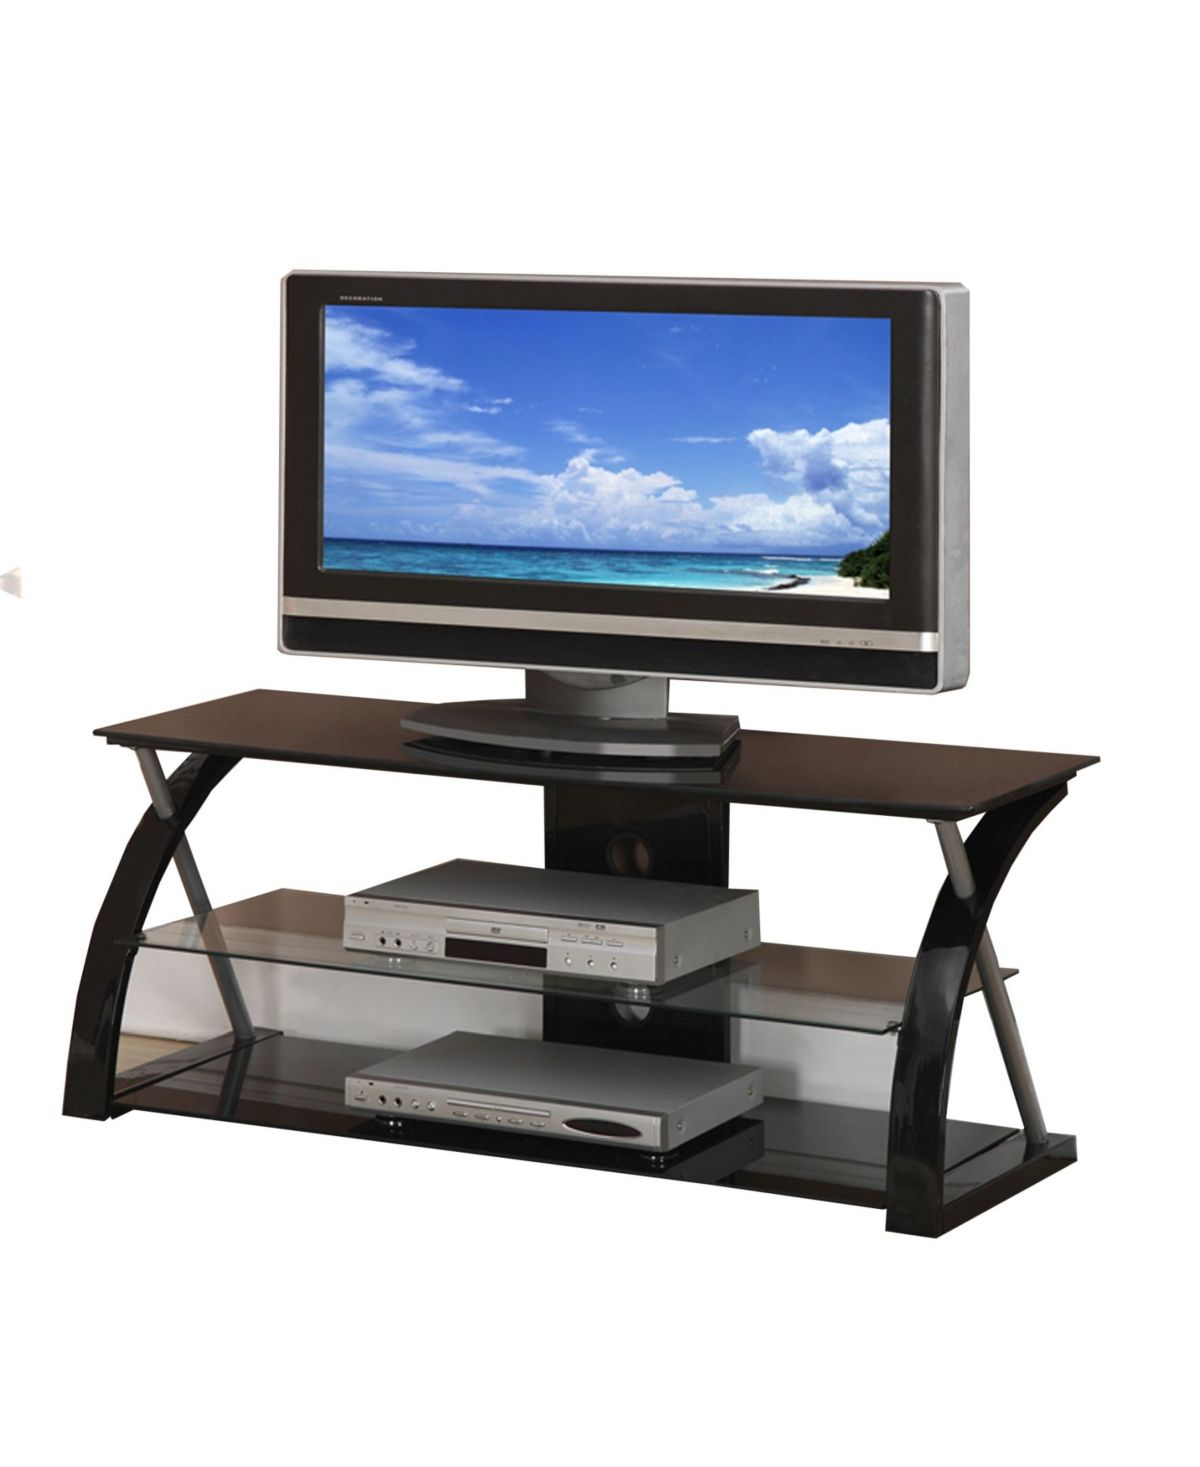 Benzara Metal Tv Stand With 3 Glass Shelves Reviews Furniture